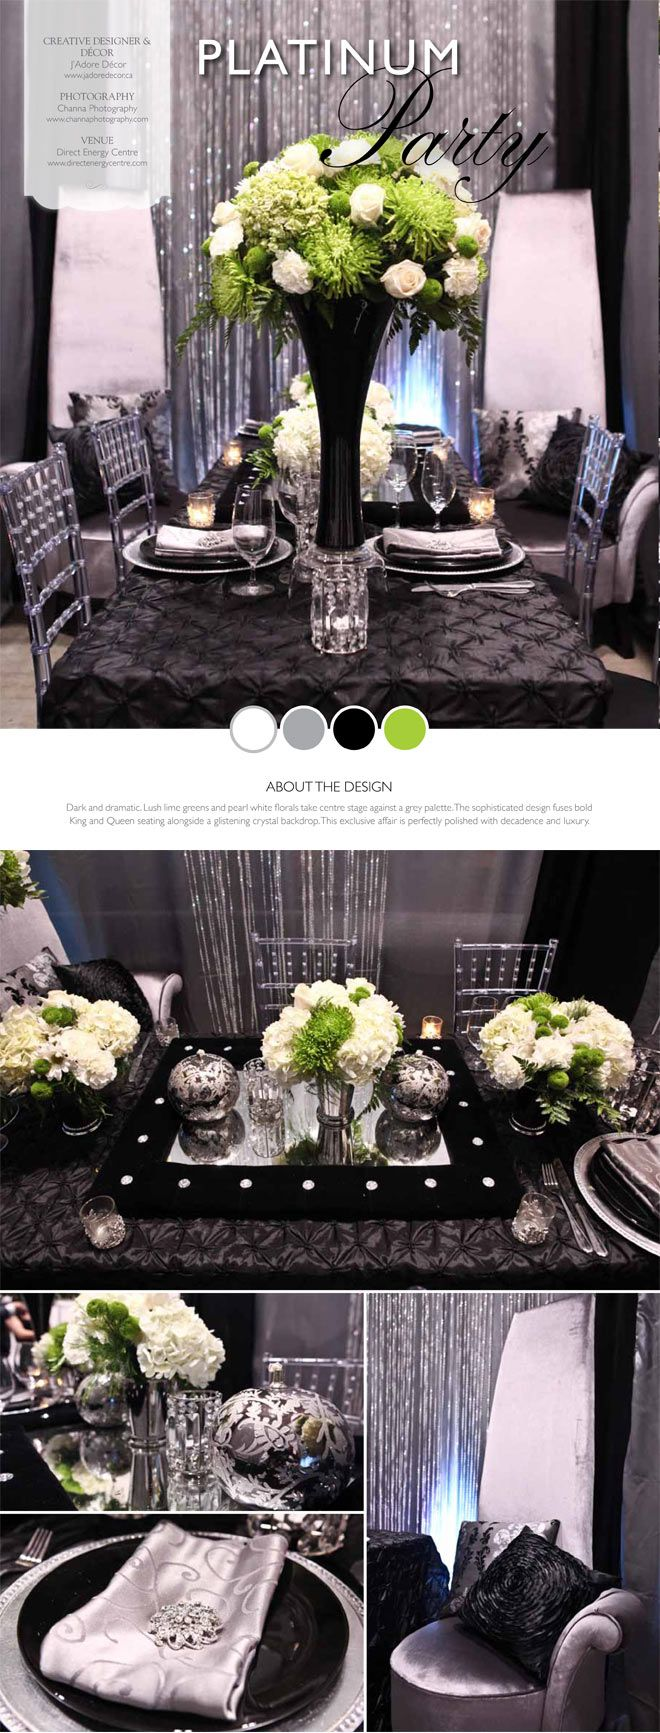 Elegant Tablescape using Tall Black Vase with green and white floral arrangement, Silver Mint Julep Cups, and Silver Charger Plates. #VesselsAndVases #GussyUpTheJulepCup #DelicateDiningDecorations